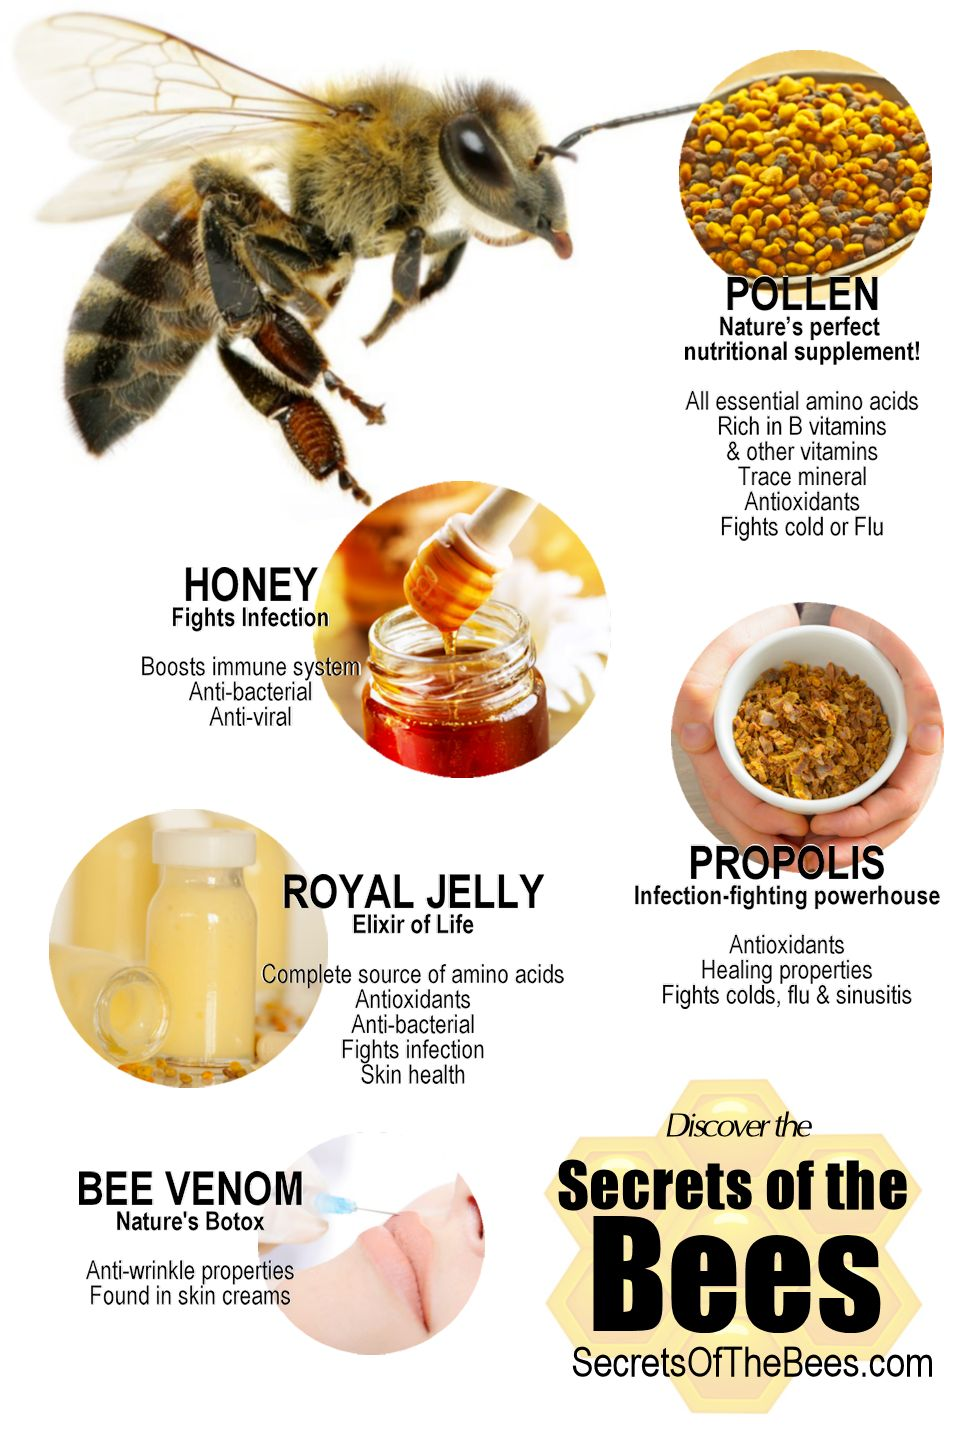 Infographic Secrets of the Bees